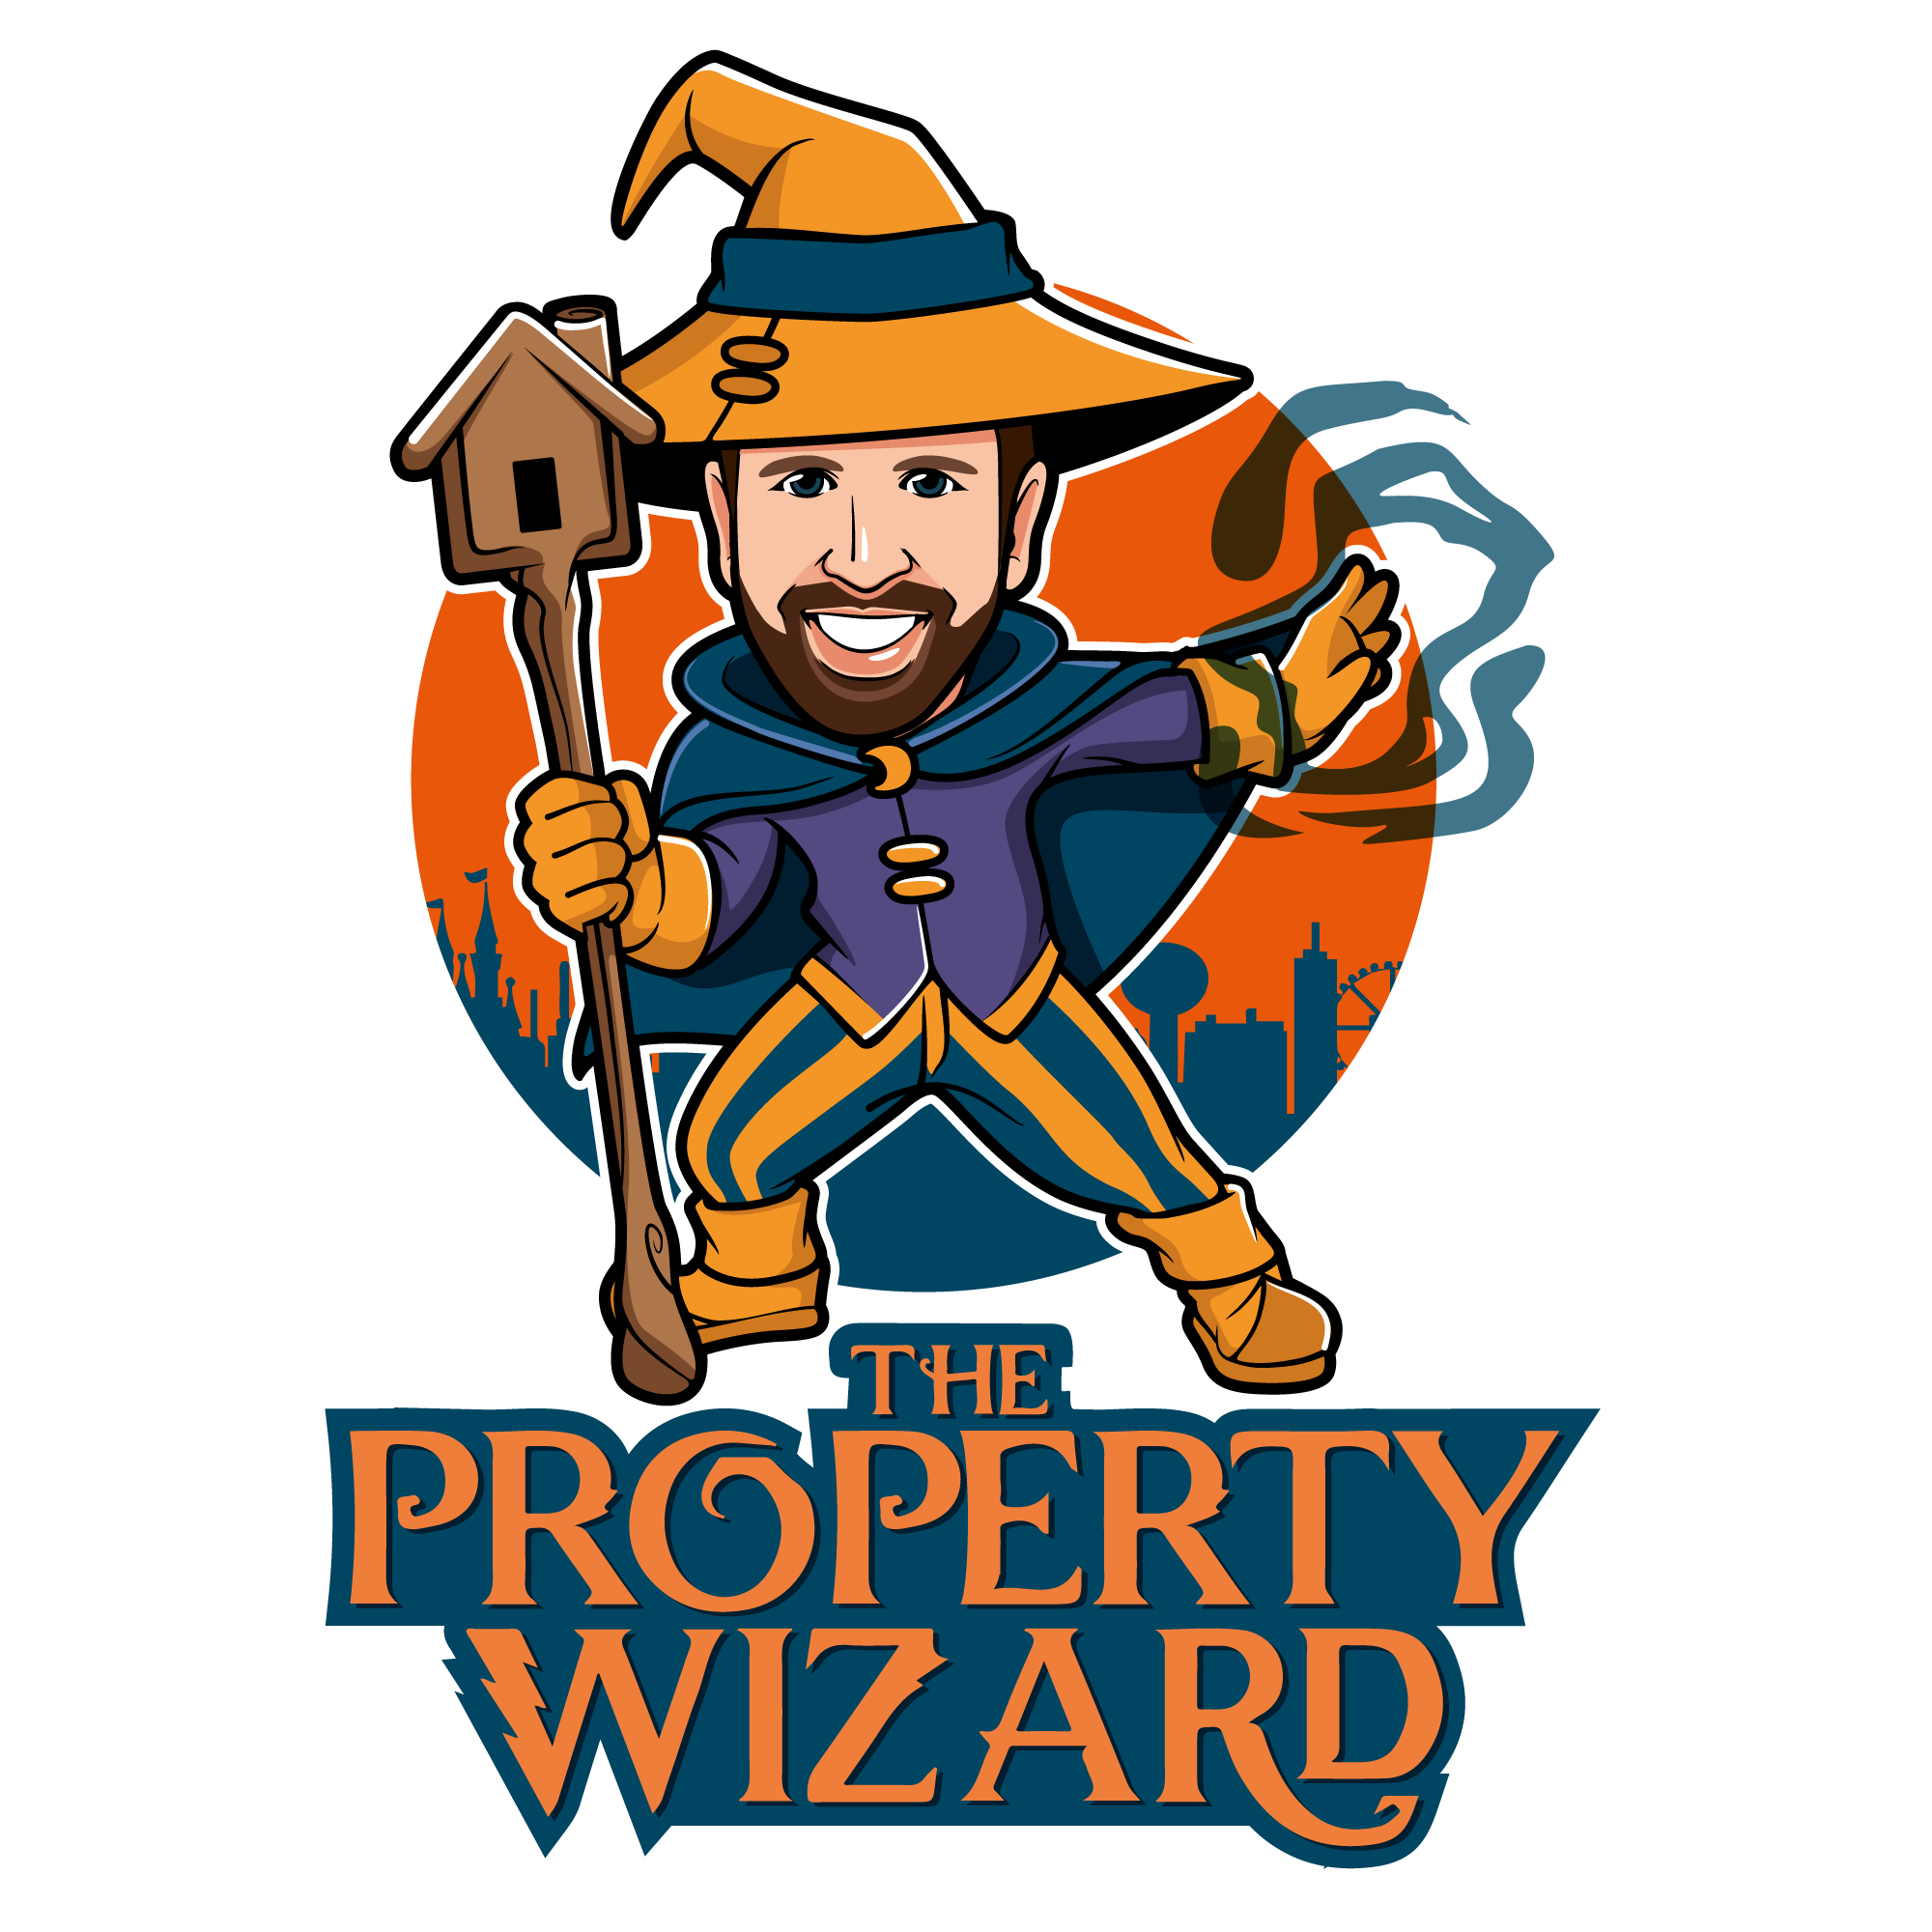 The Property Wizard